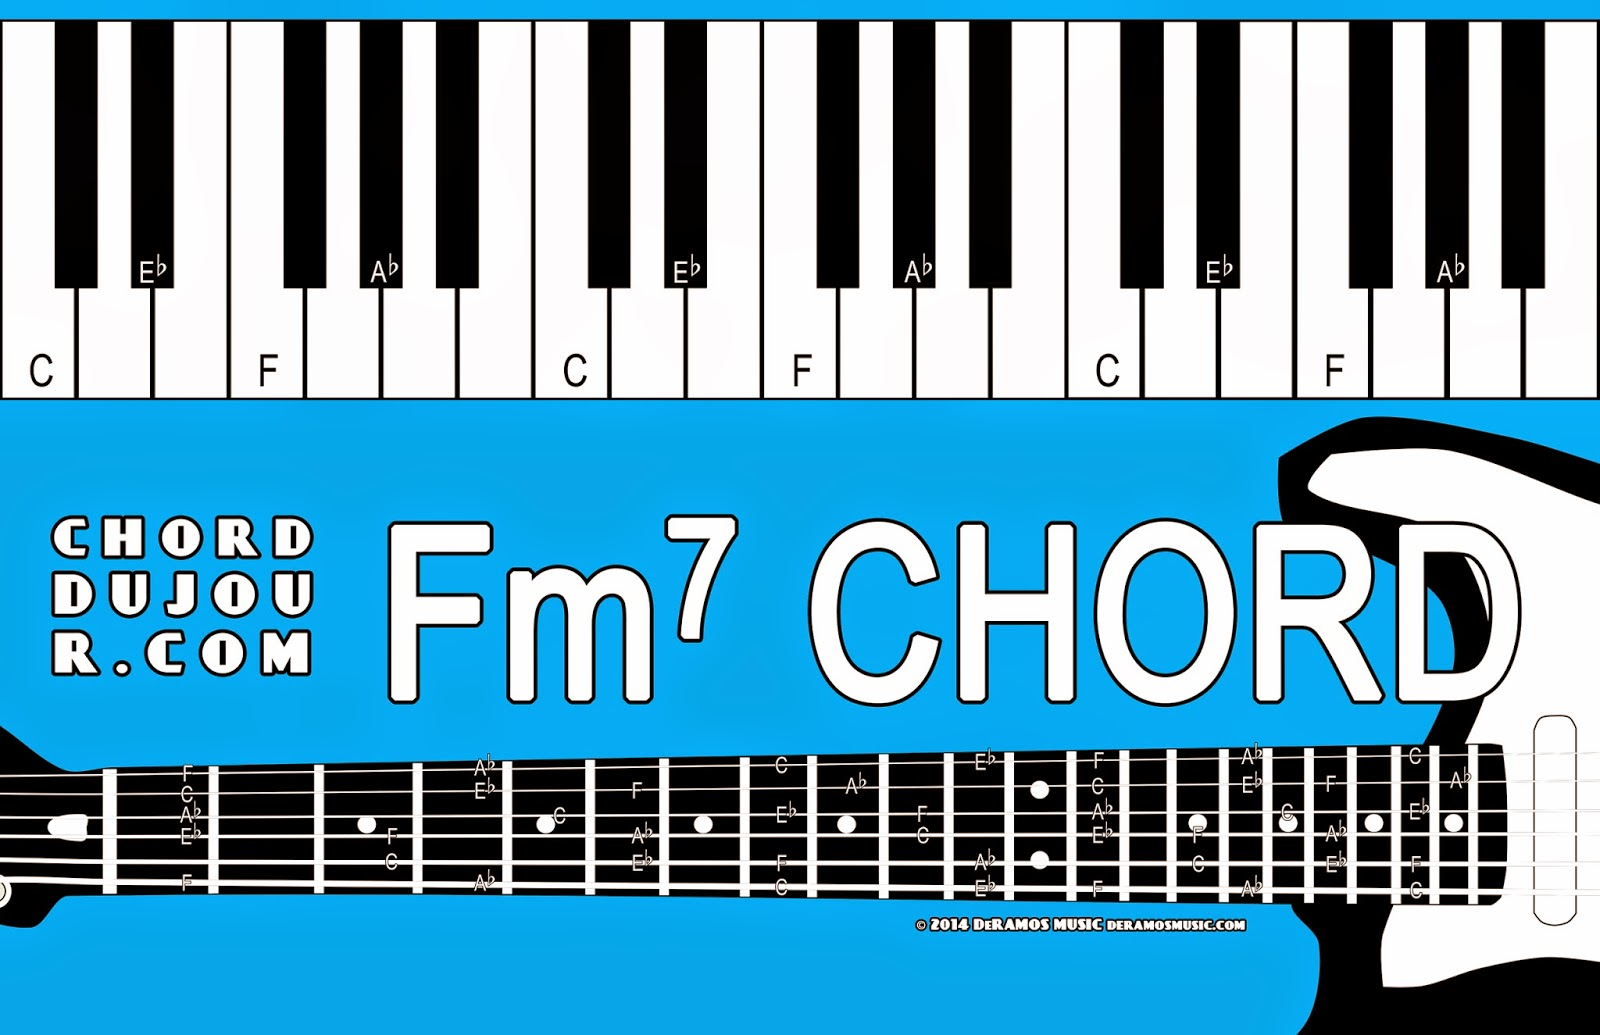 Chord du jour dictionary fm7 chord fm7 is an f minor triad with a minor 7th e flat note this chord is compatible with the f dorian f aeolian and f phrygian modes hexwebz Gallery